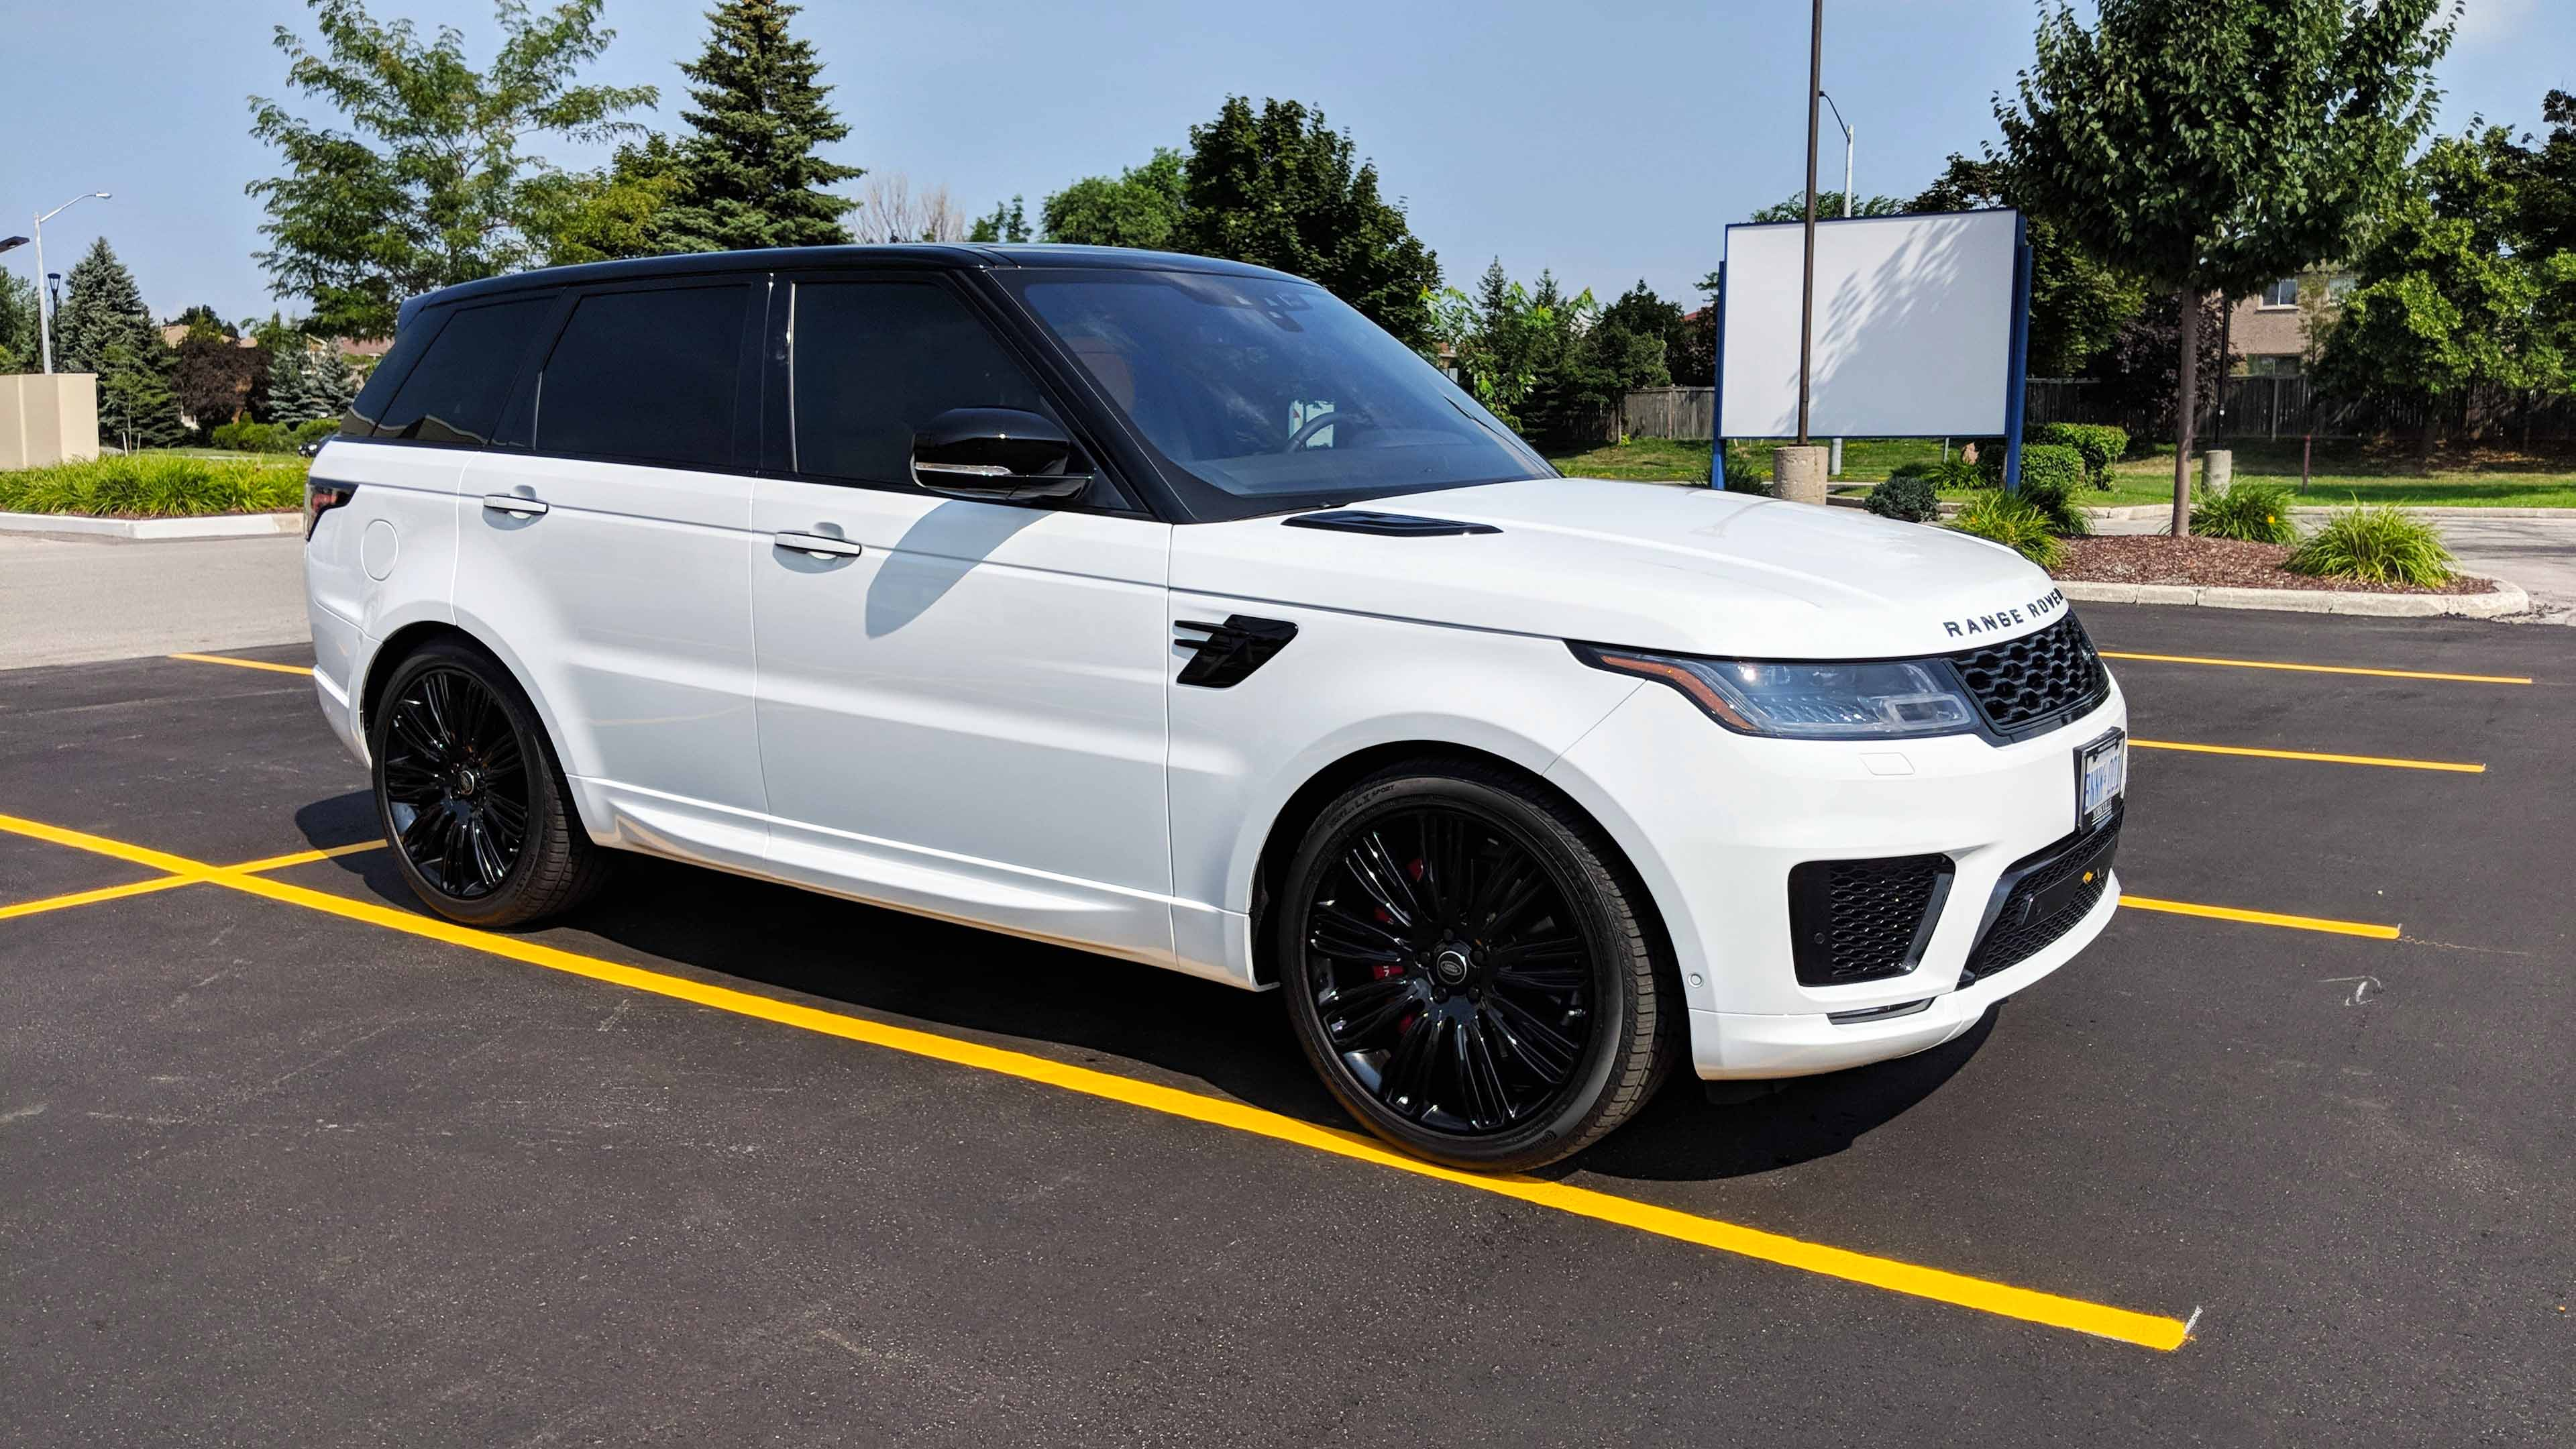 Range Rover sport gloss black roof and window tint with paint protection